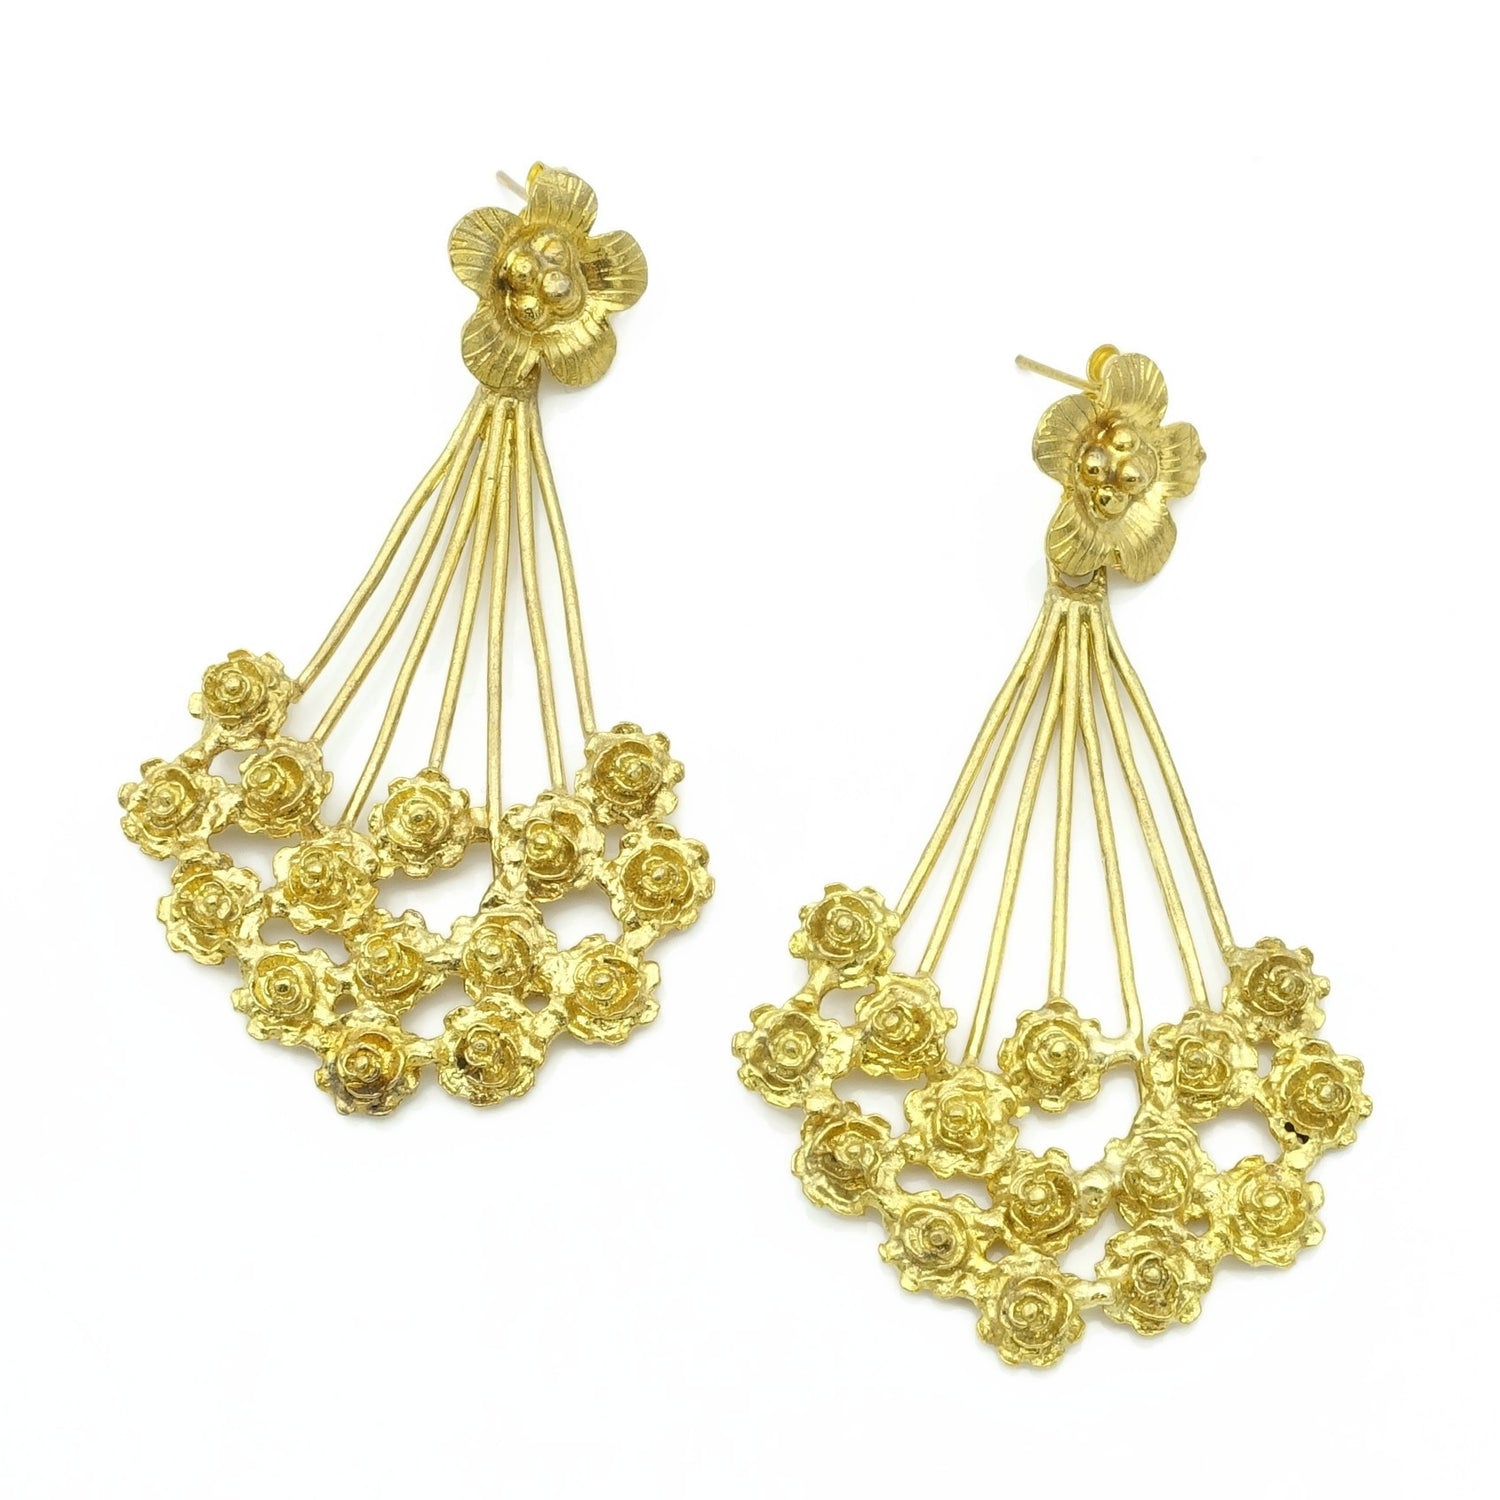 Aylas Flower Floral earrings - 21ct Gold plated  - Handmade in Ottoman style